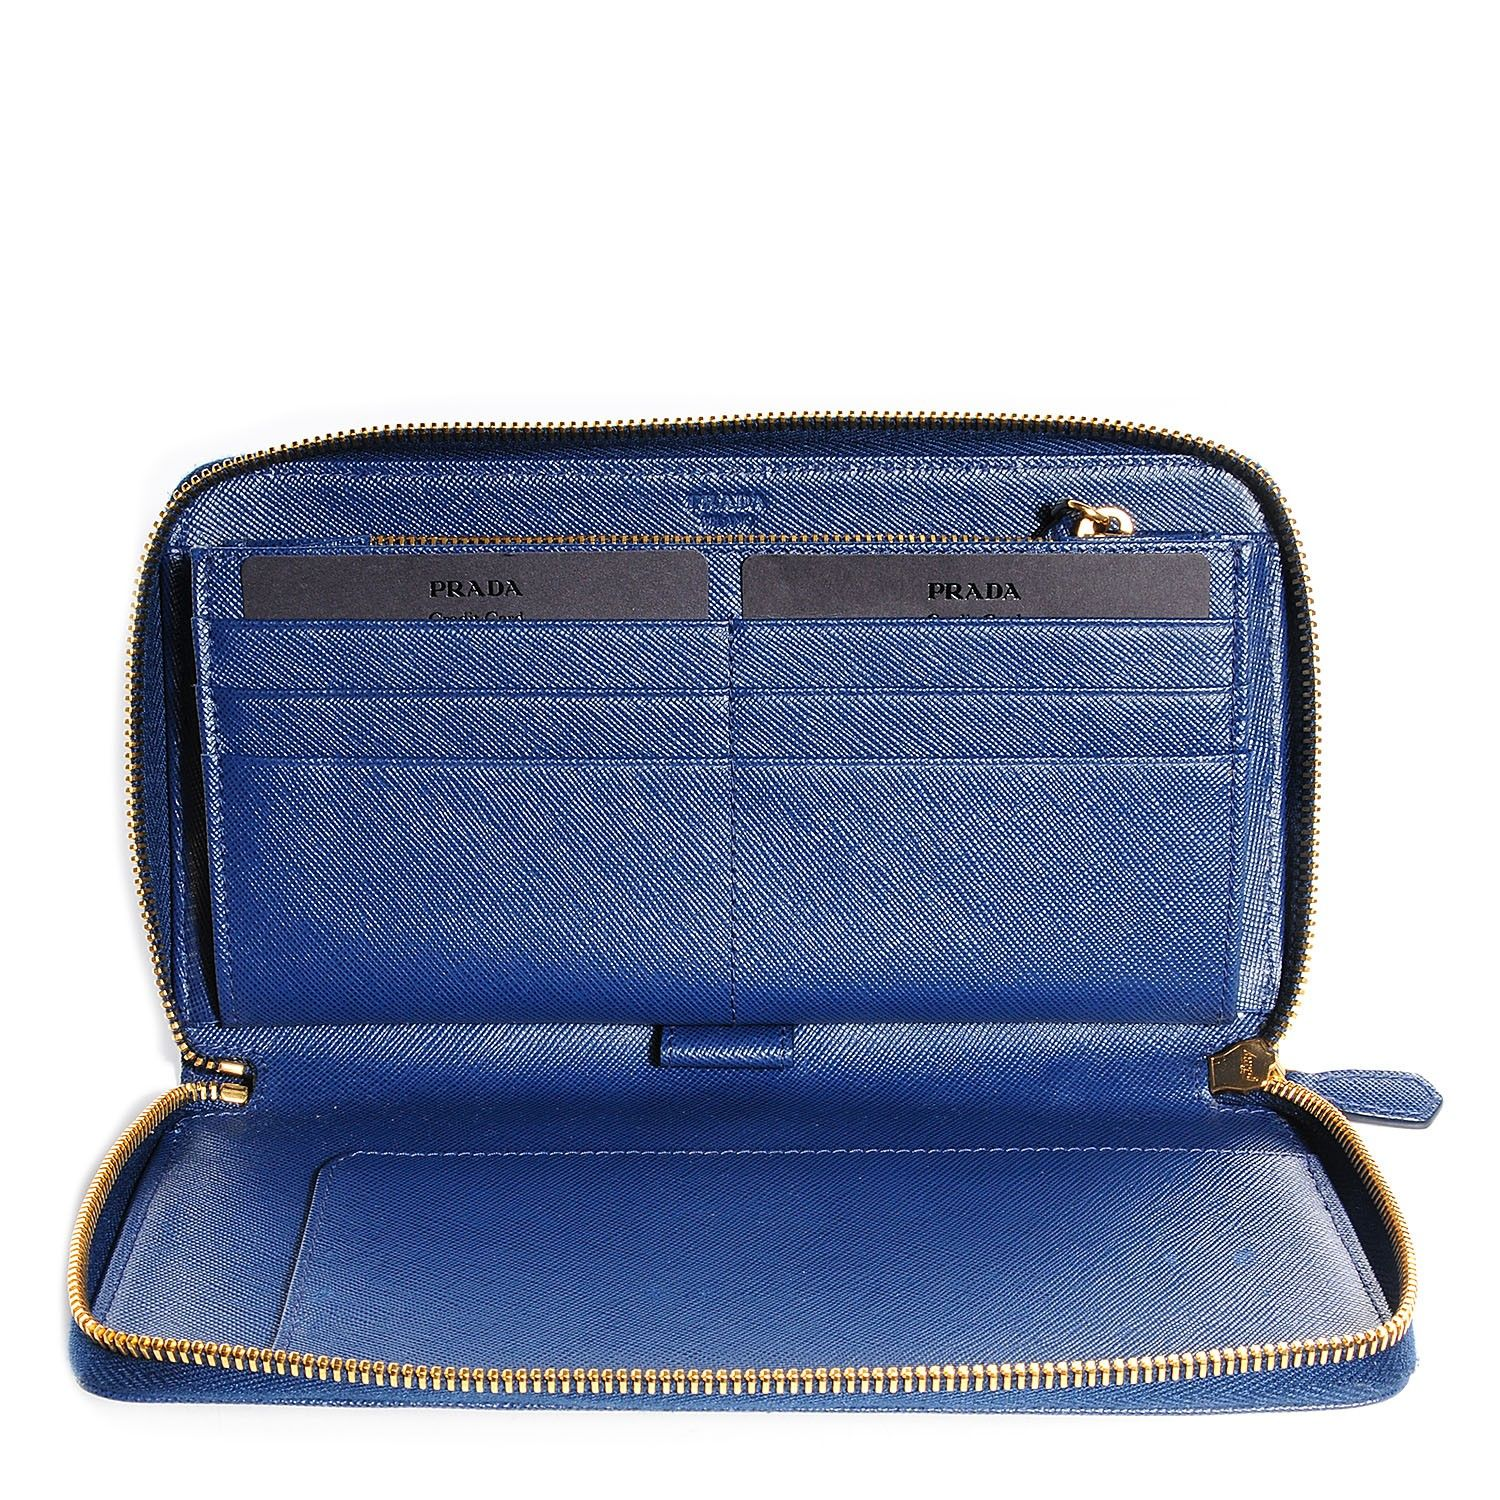 1d6f51133e2789 This is an authentic PRADA Saffiano Metal Zip Around Organizer Wallet in  Bluette. This is